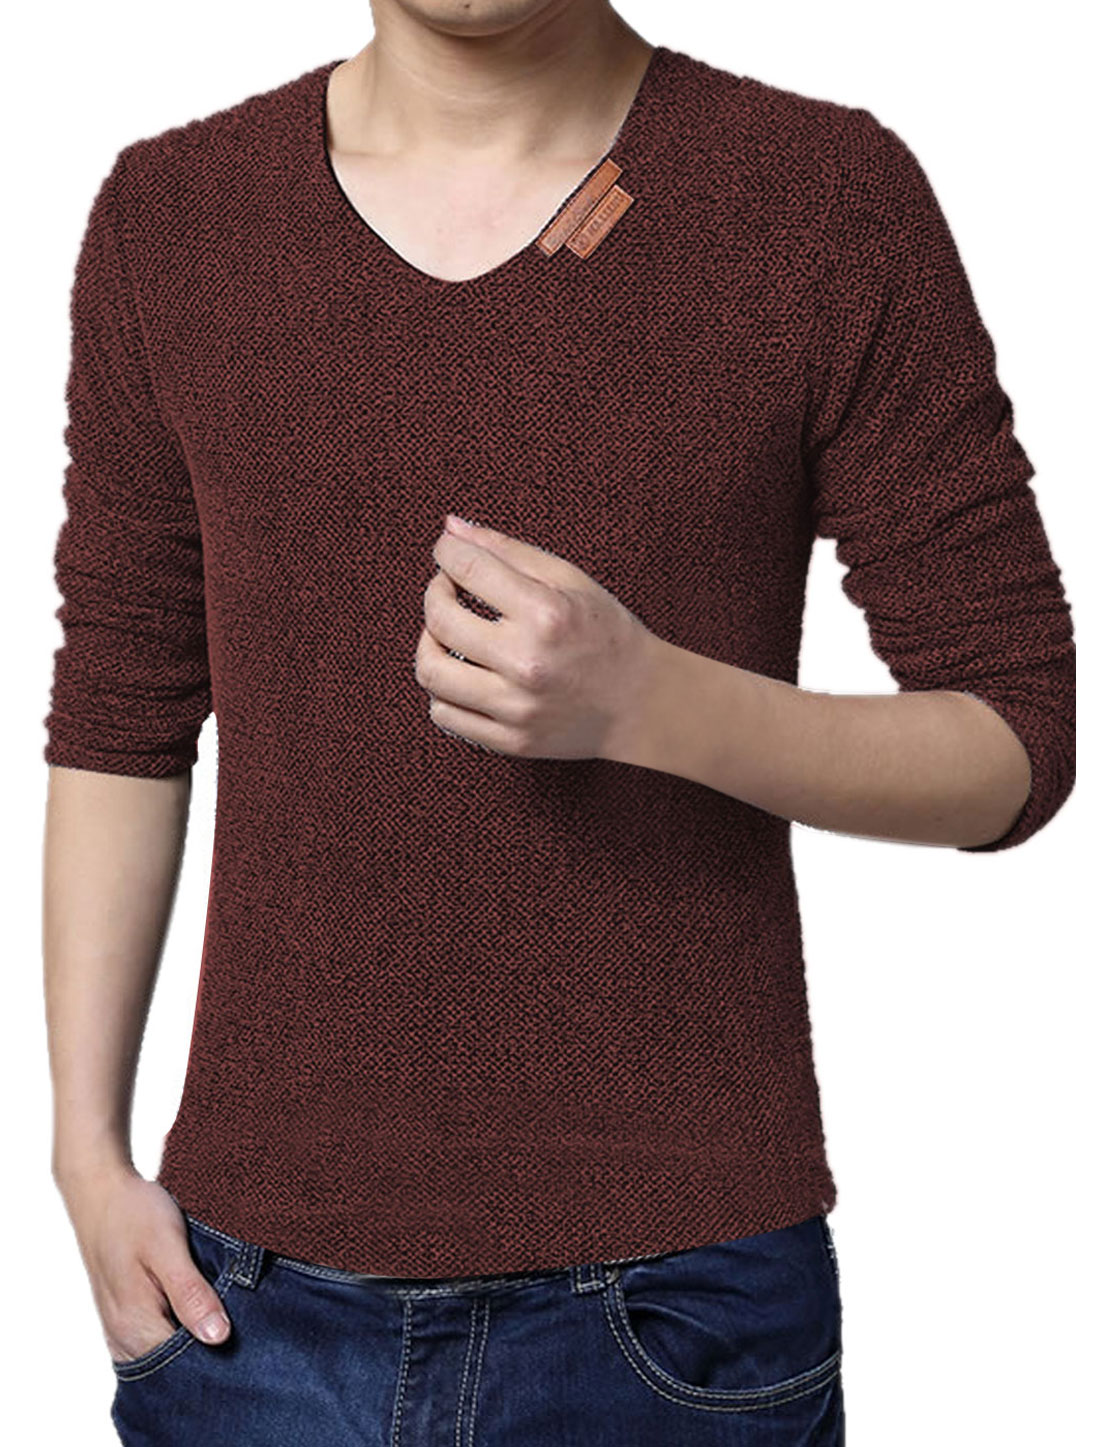 Men V Neck Long Sleeves Netted Mesh Tee Shirt Brown M